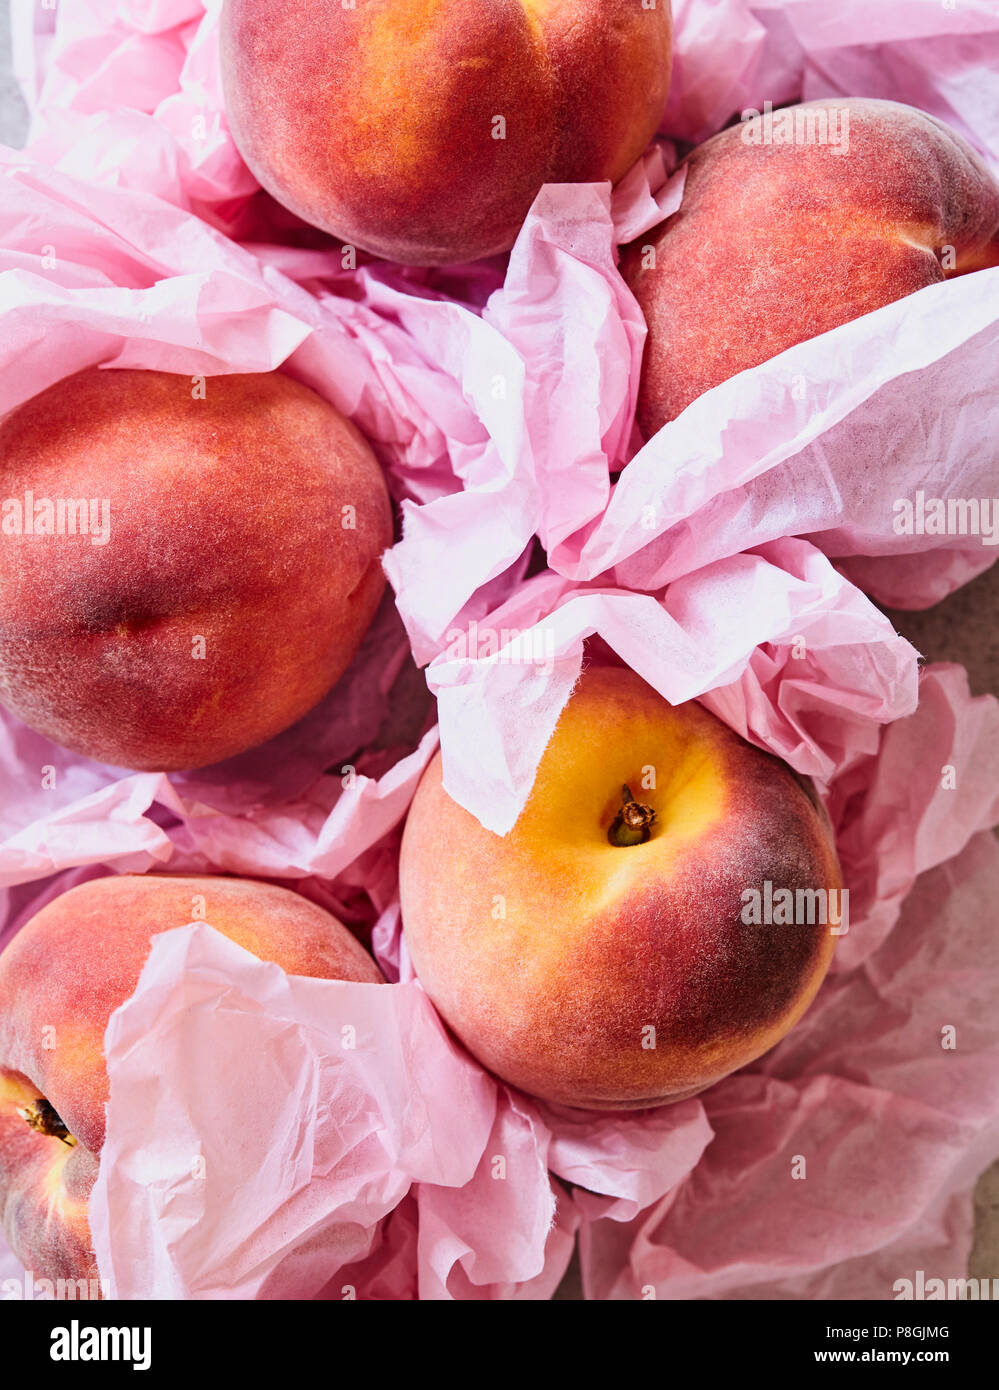 Fresh Peaches in Pink Tissue - Stock Image